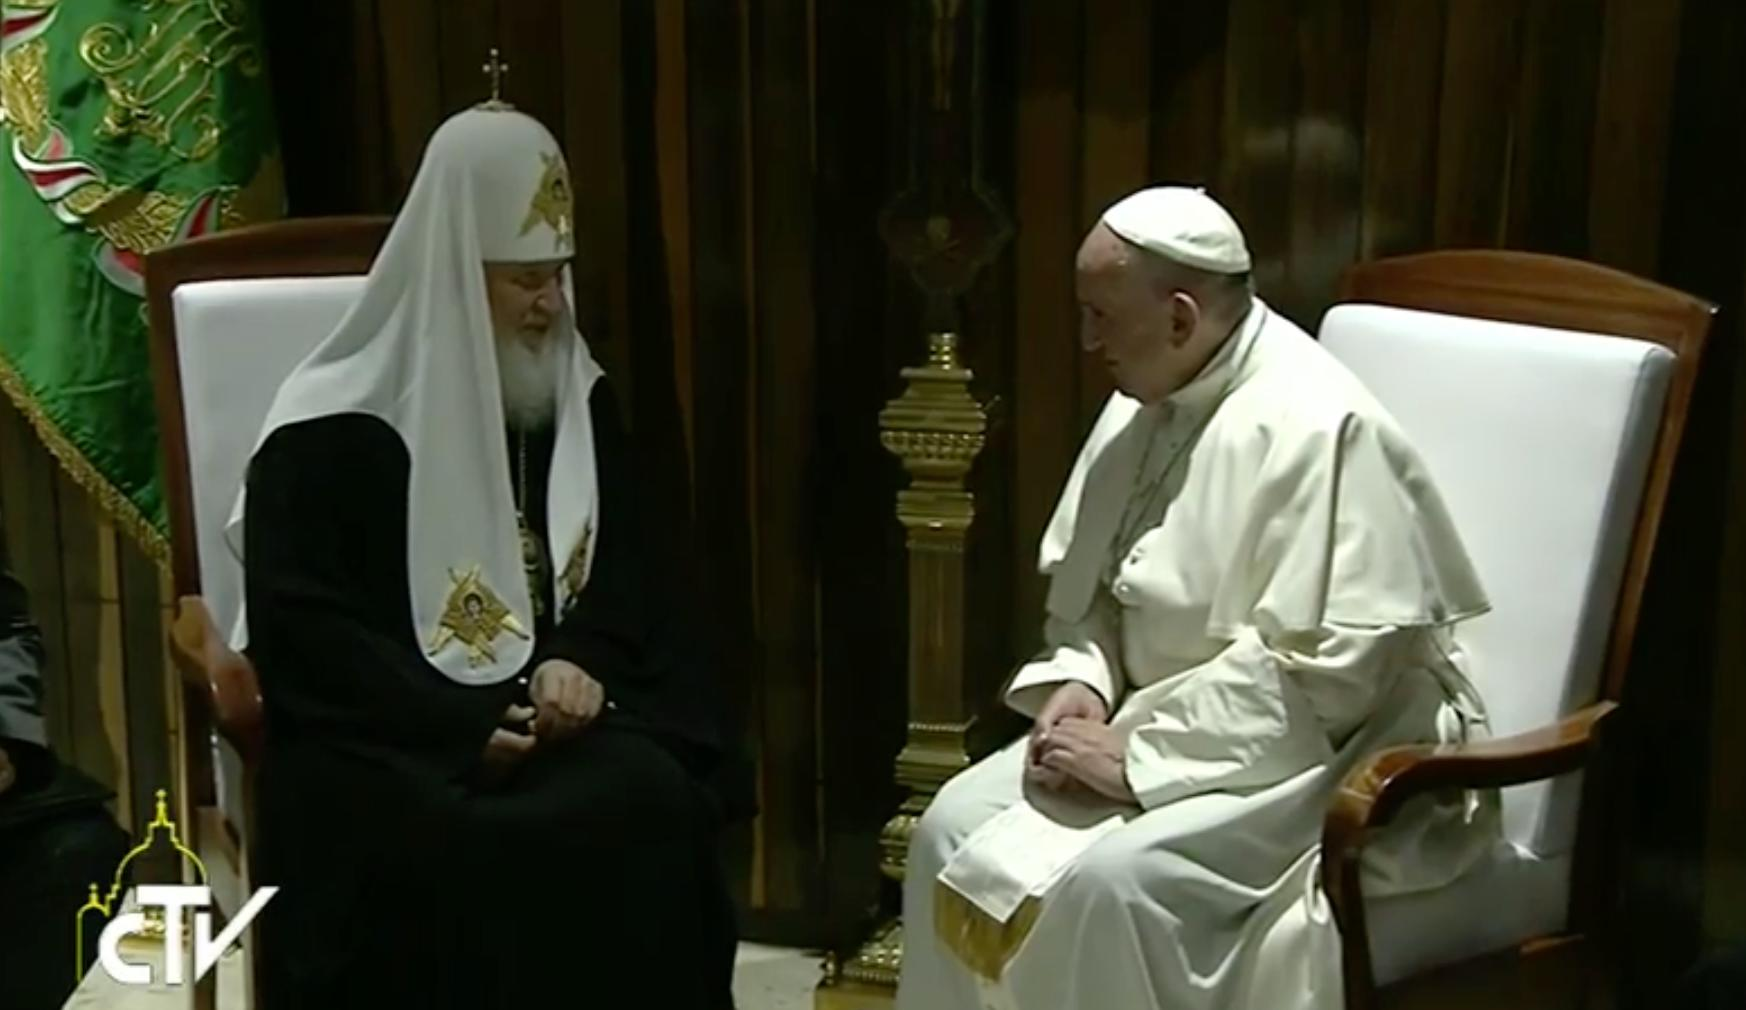 The pope and Russian Orthodox leader meet for first time in 1,000 years